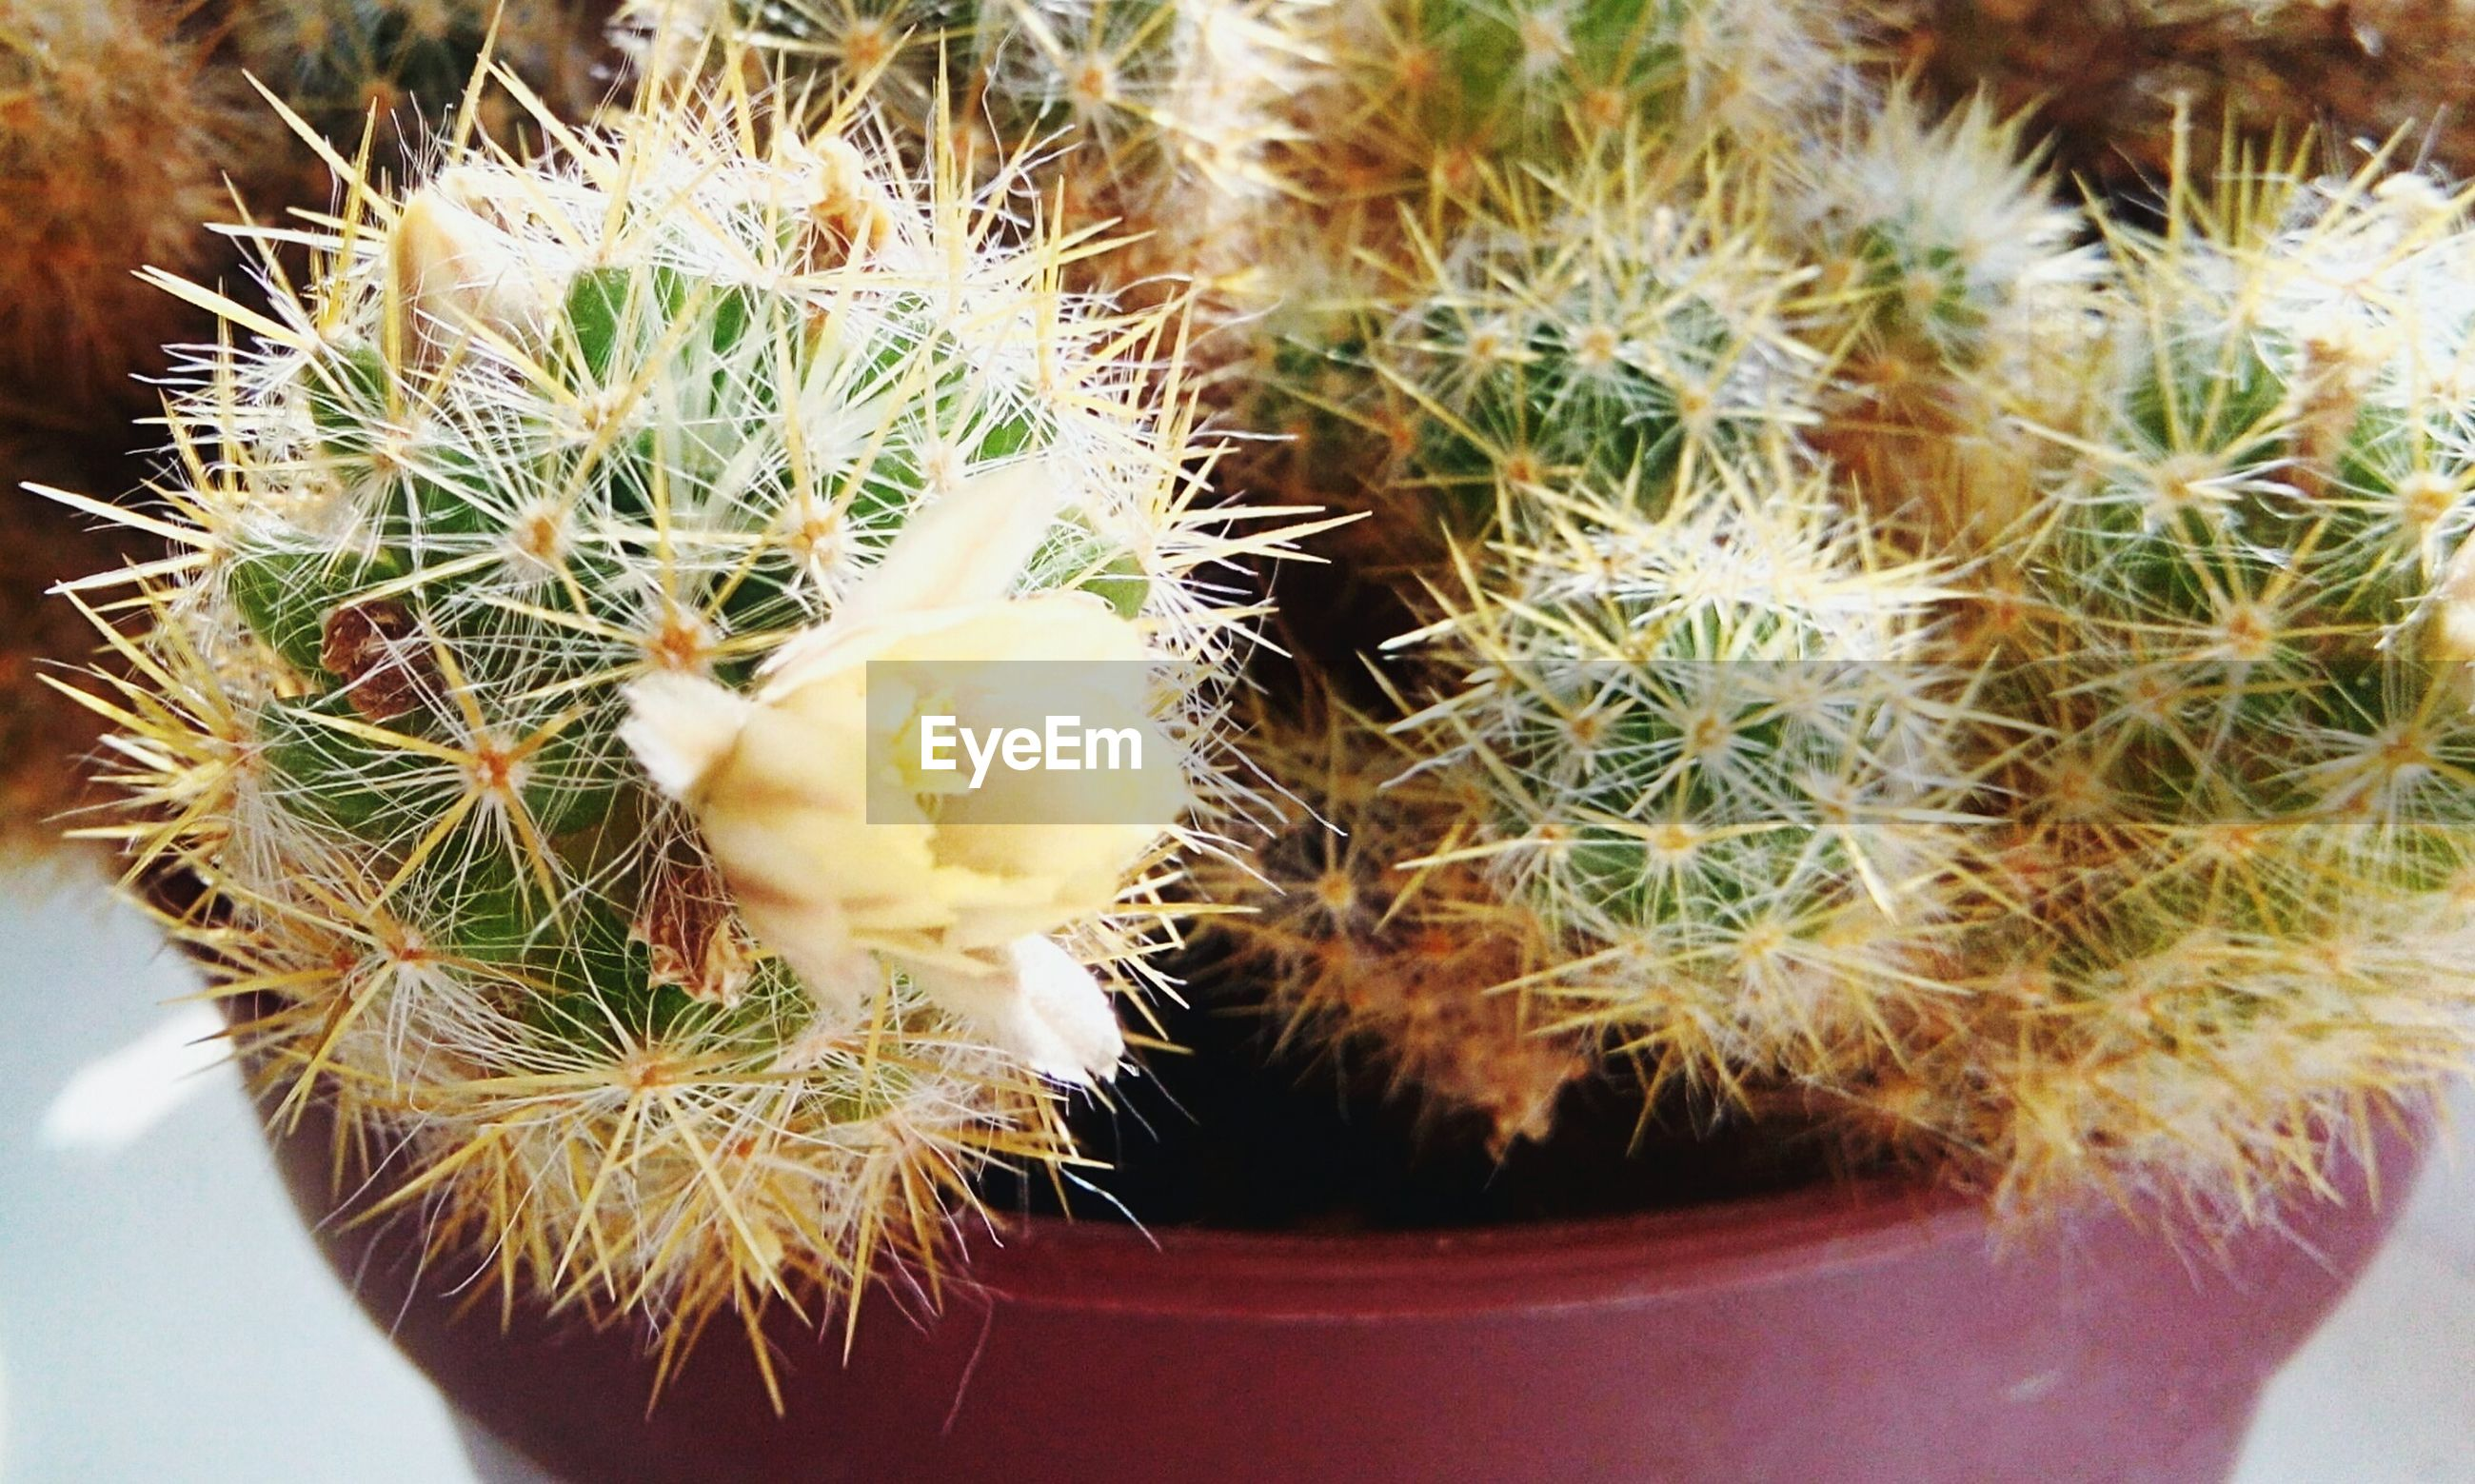 cactus, succulent plant, plant, growth, close-up, thorn, potted plant, beauty in nature, no people, spiked, sharp, nature, warning sign, sign, day, communication, freshness, green color, focus on foreground, barrel cactus, outdoors, flower pot, needle - plant part, houseplant